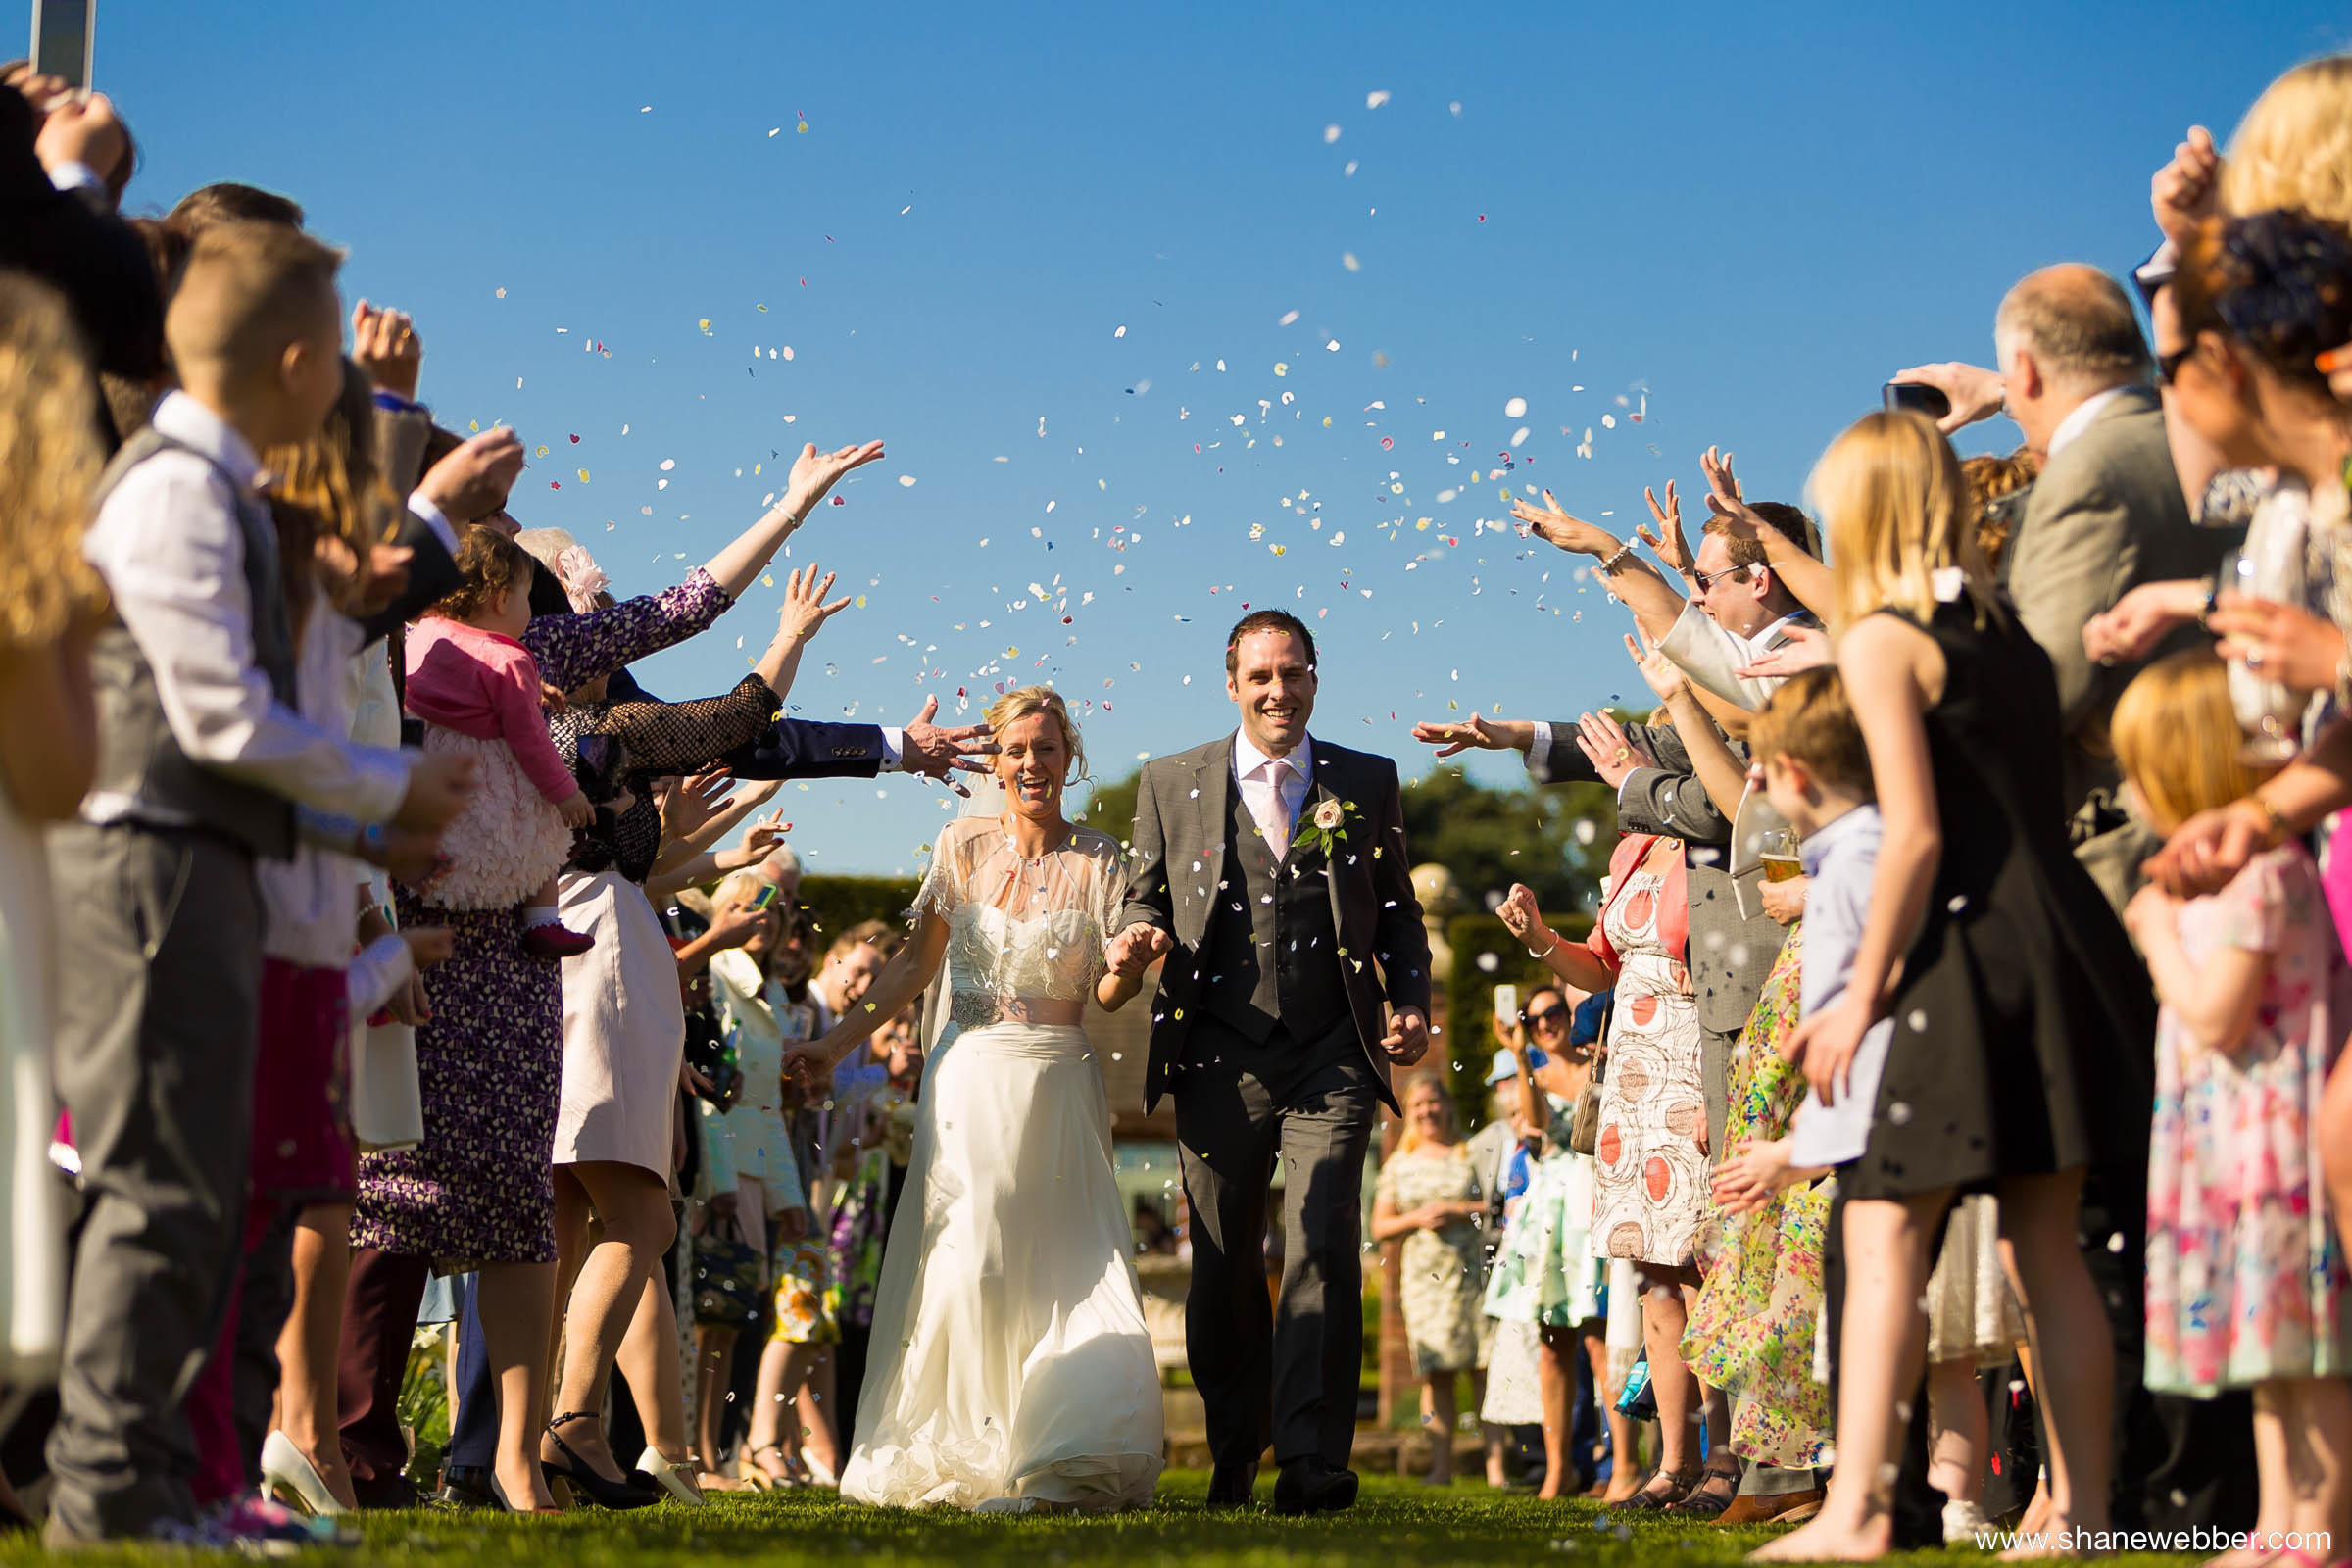 Colourful summer wedding photography